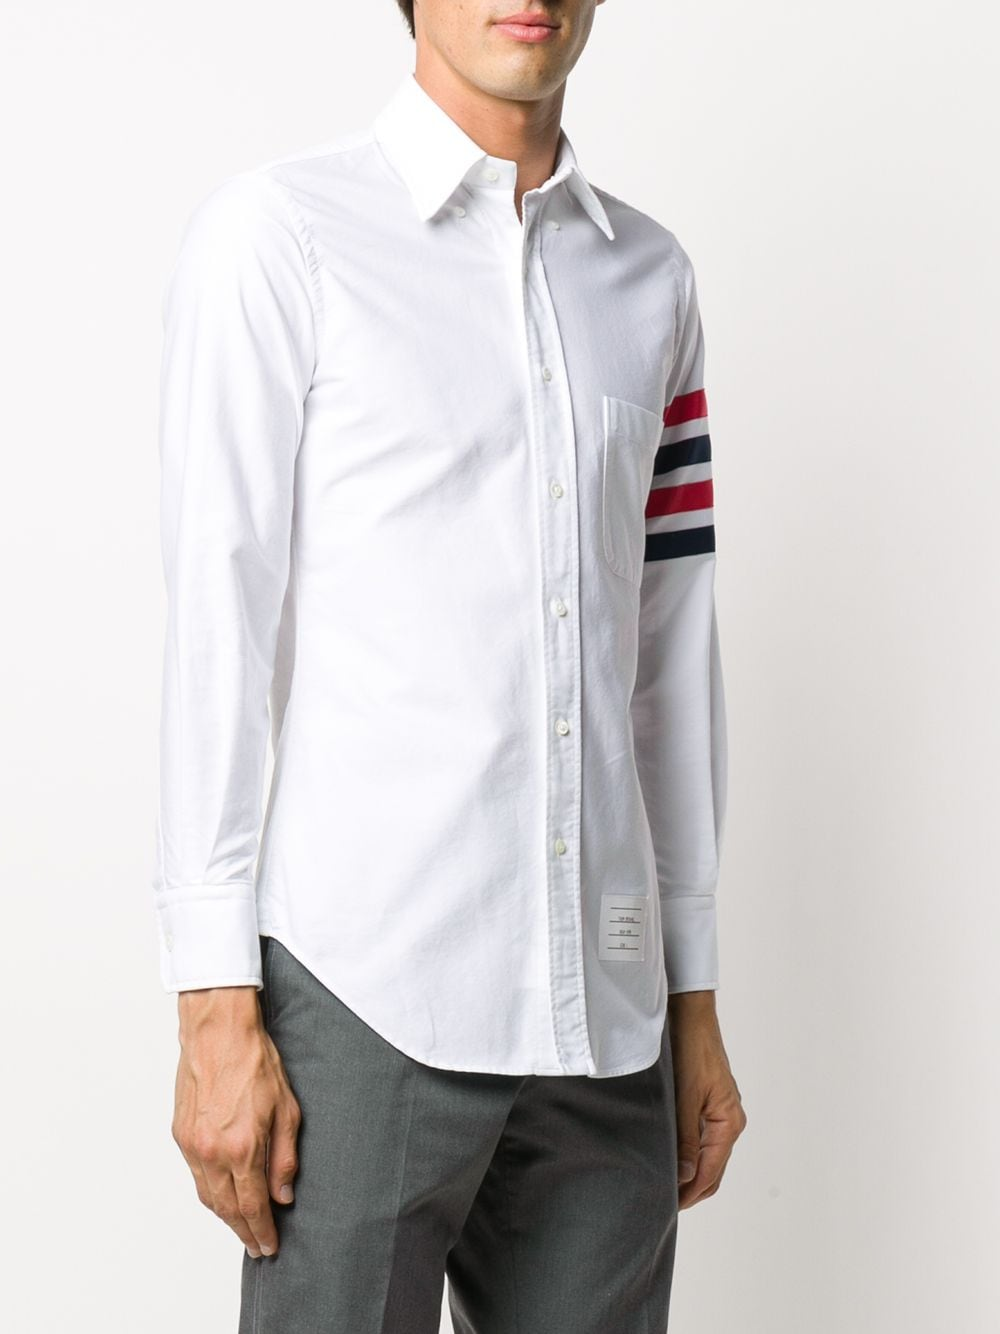 THOM BROWNE MEN CLASSIC FIT BUTTON DOWN LONG SLEEVE SHIRT W/ TOP APPLIED GG BAR IN OXFORD